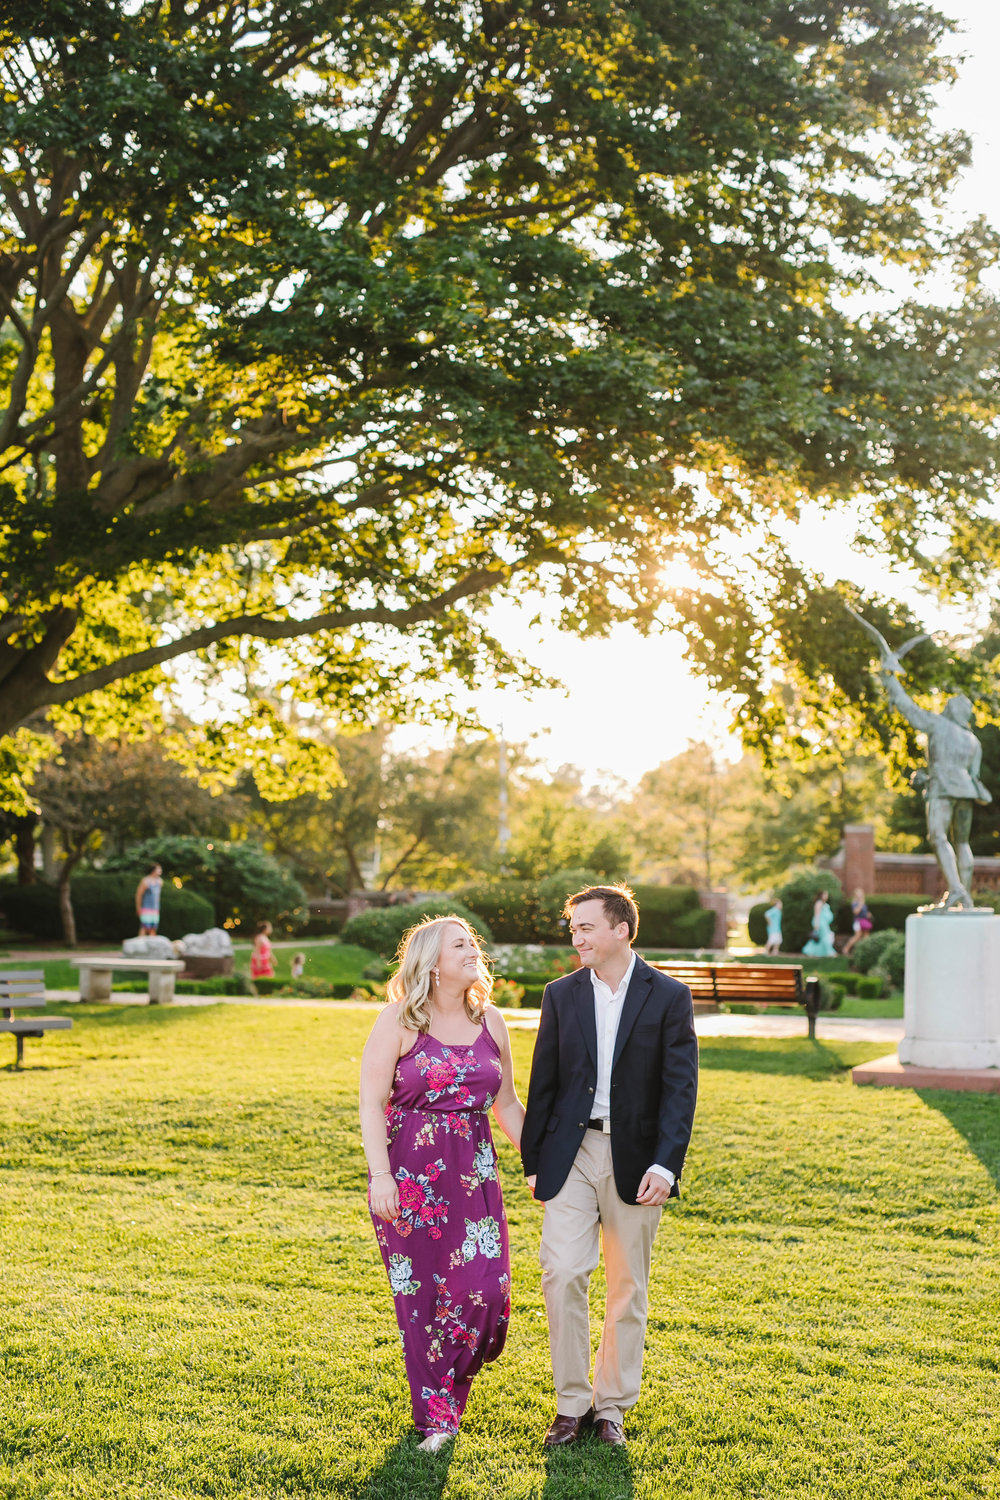 Beverly Lynch Park Rose Garden Engagement Session - Emily Tebbetts Photography-35.jpg